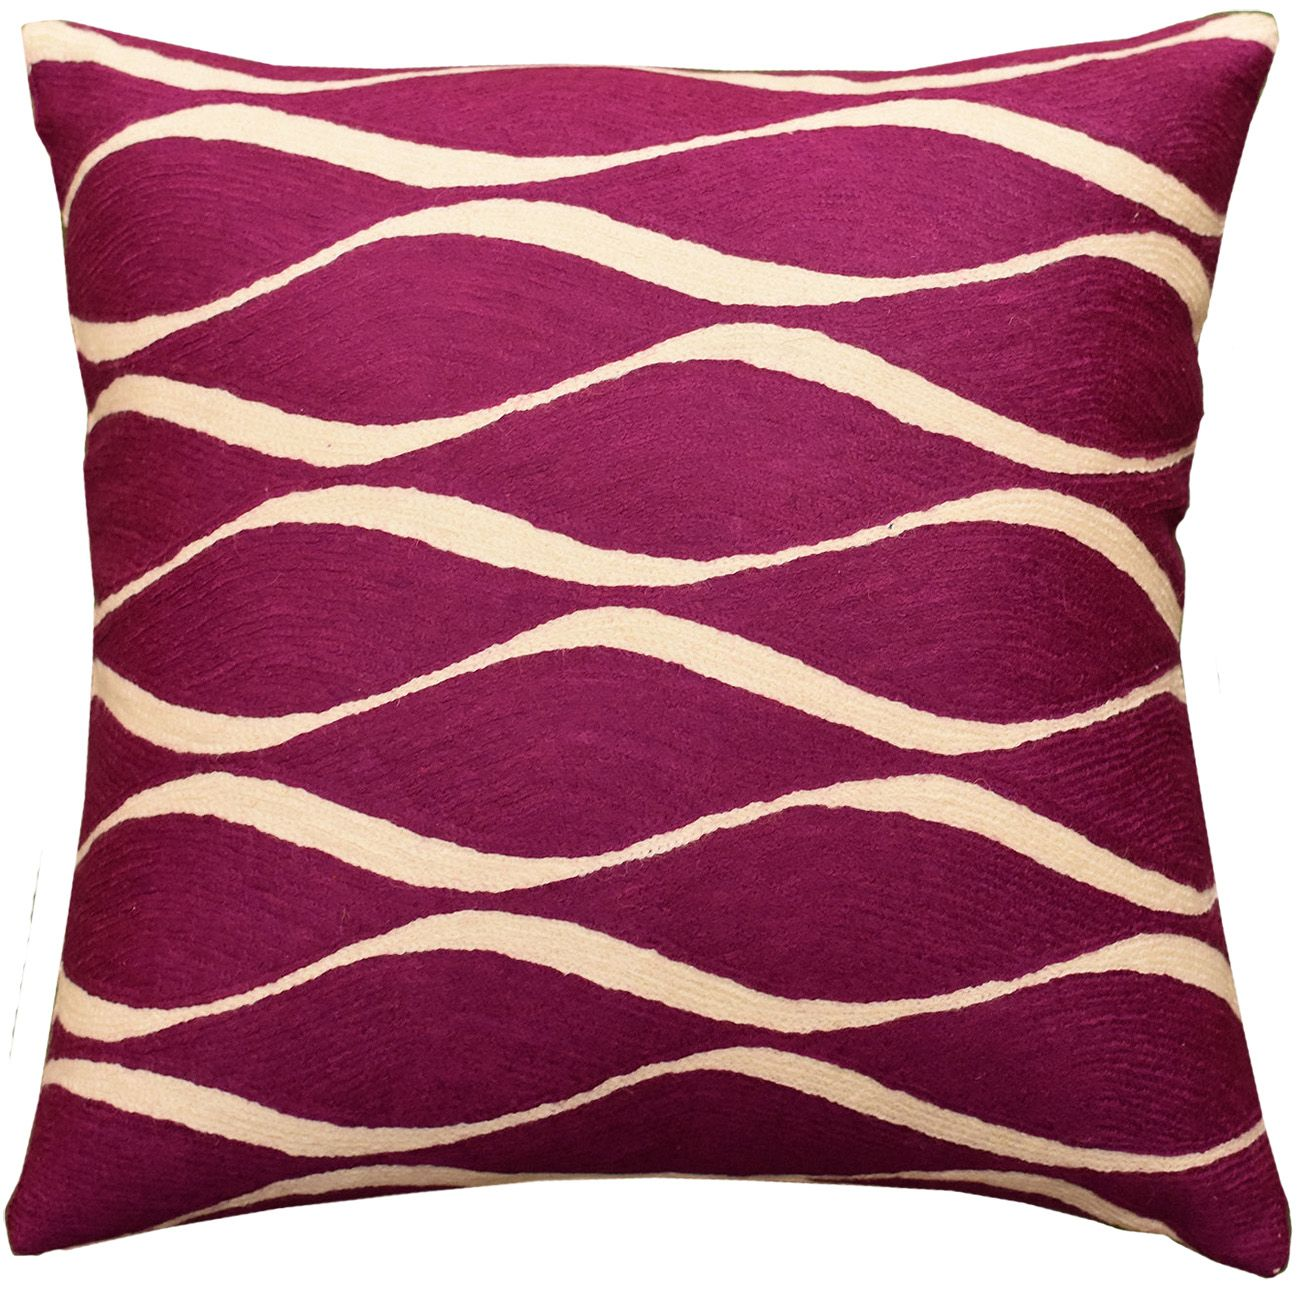 Contemporary Geometric Decorative Pillow Cover French Plum Seamless Vector Flow Modern Throw Pillows Cushions Accent Sofa Couch Cushion Abstract Wool